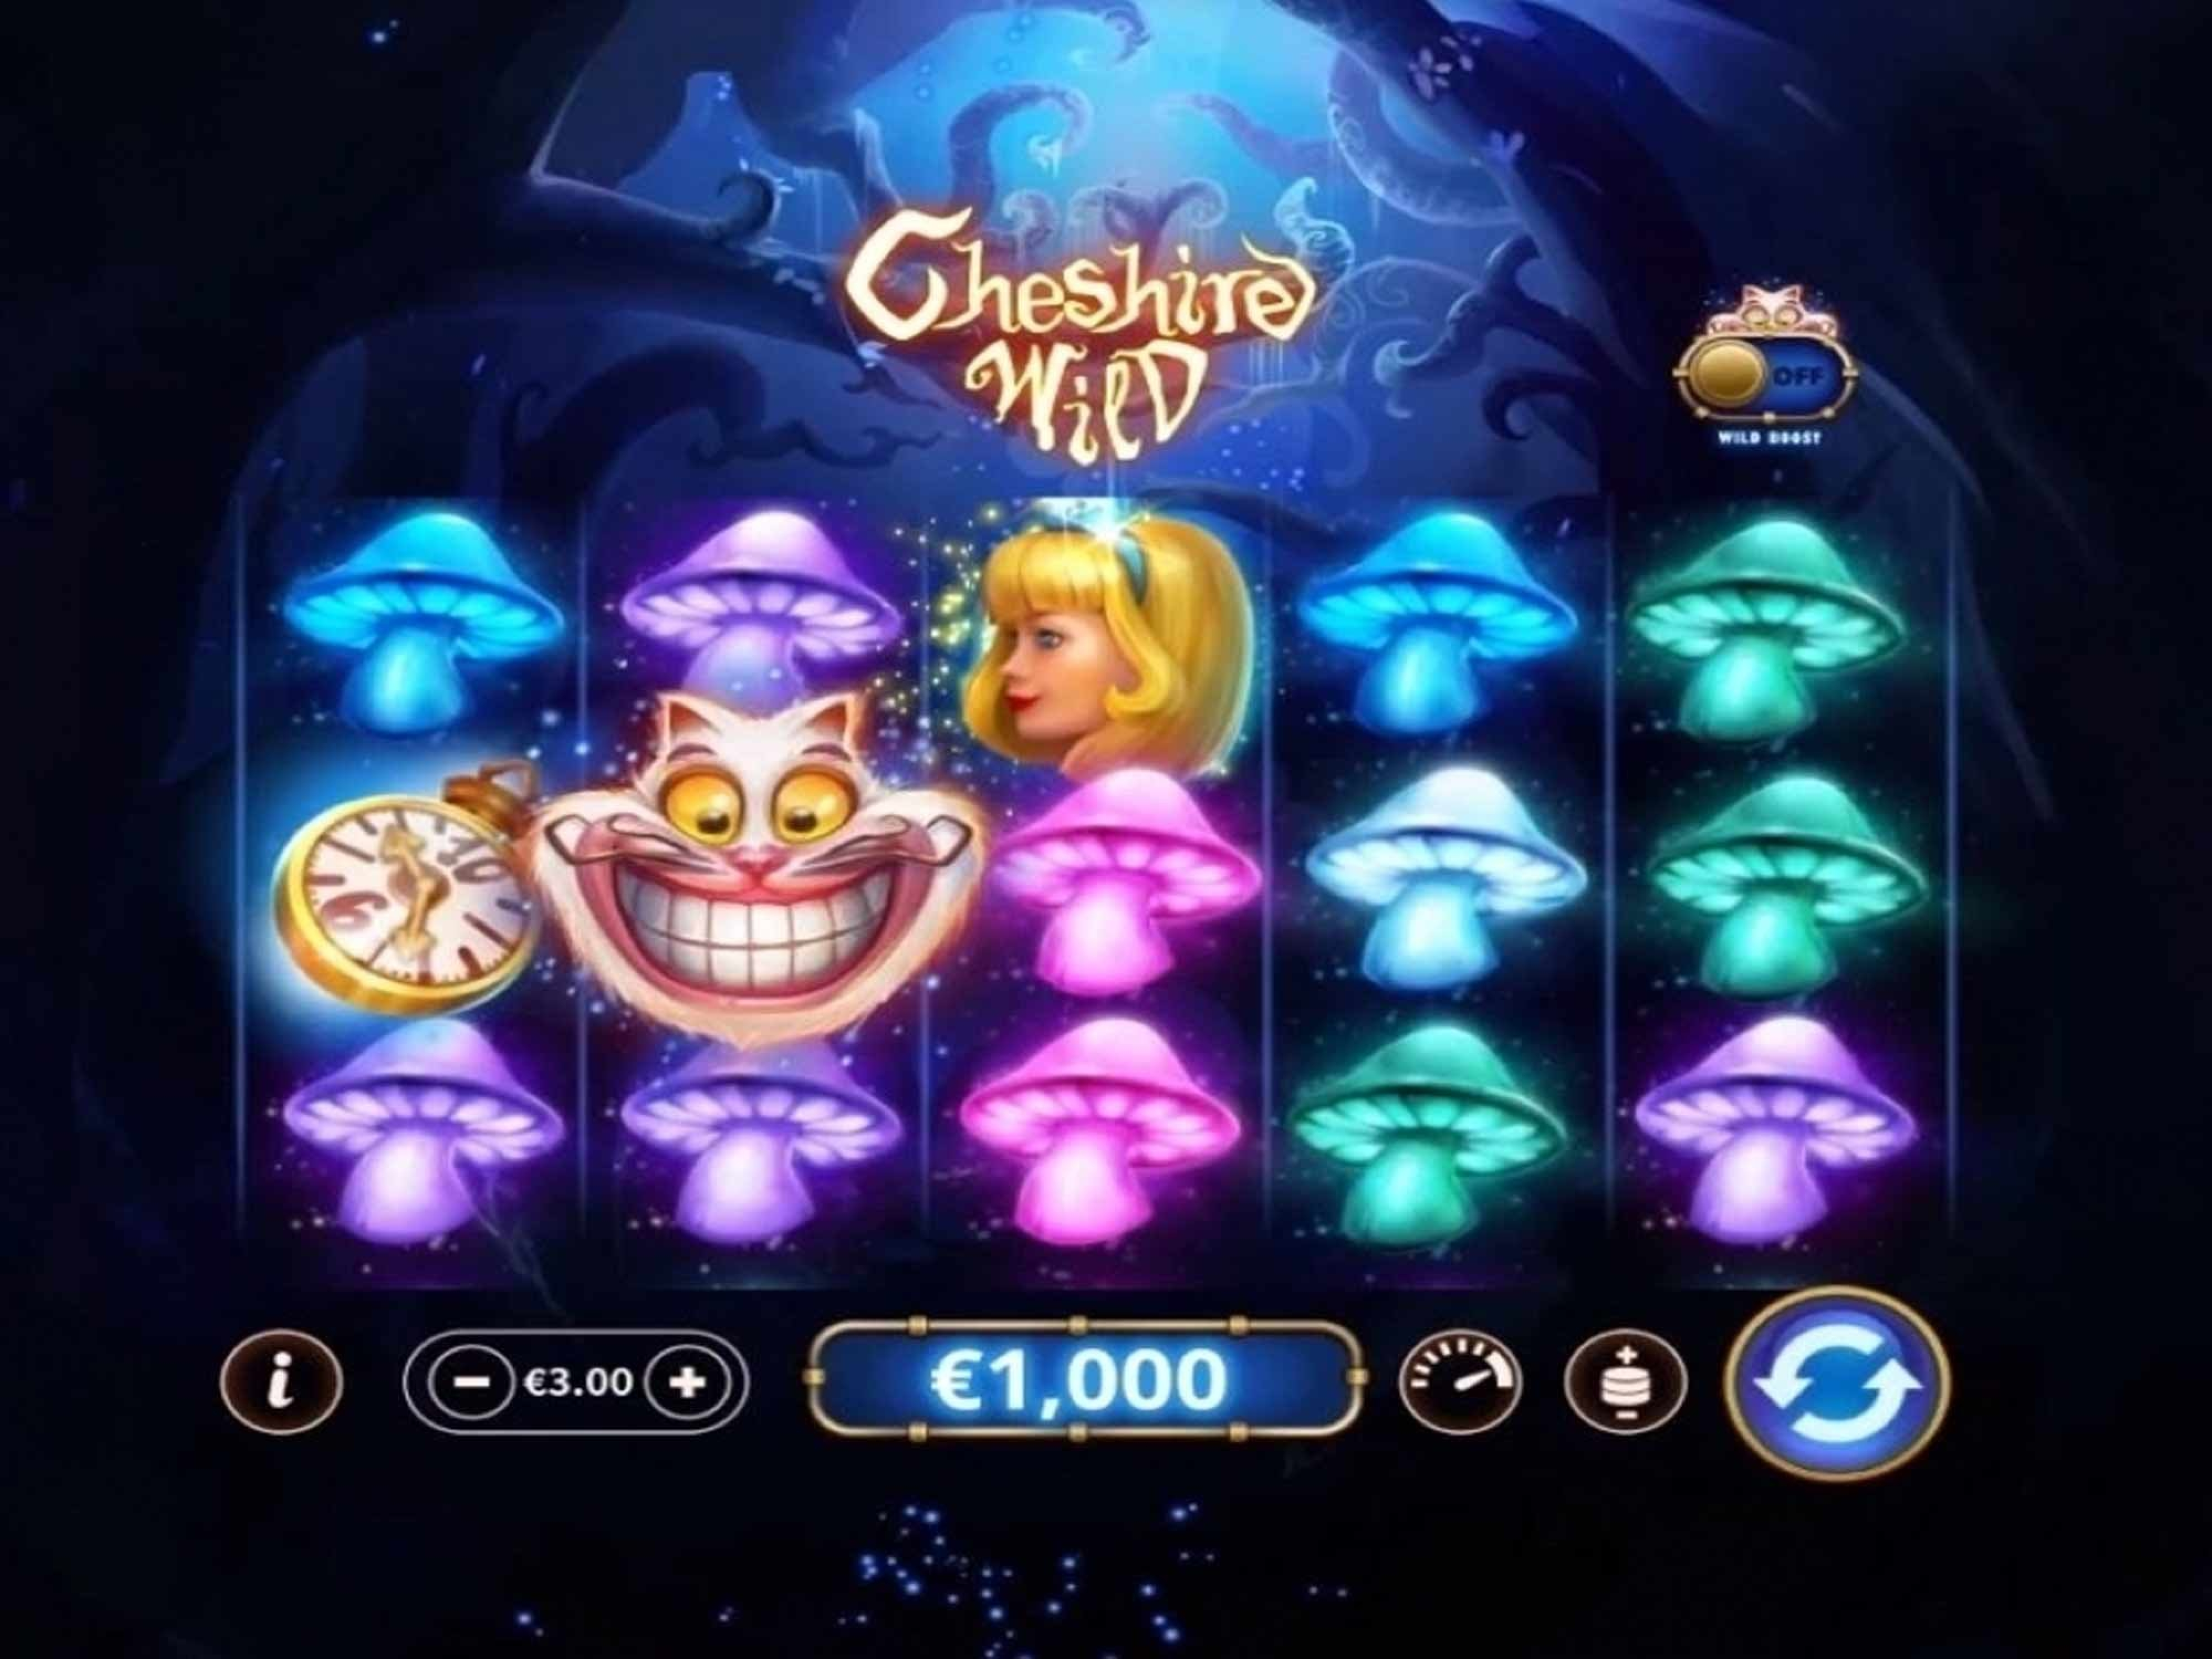 Win Money in Cheshire Wild Free Slot Game by Skywind